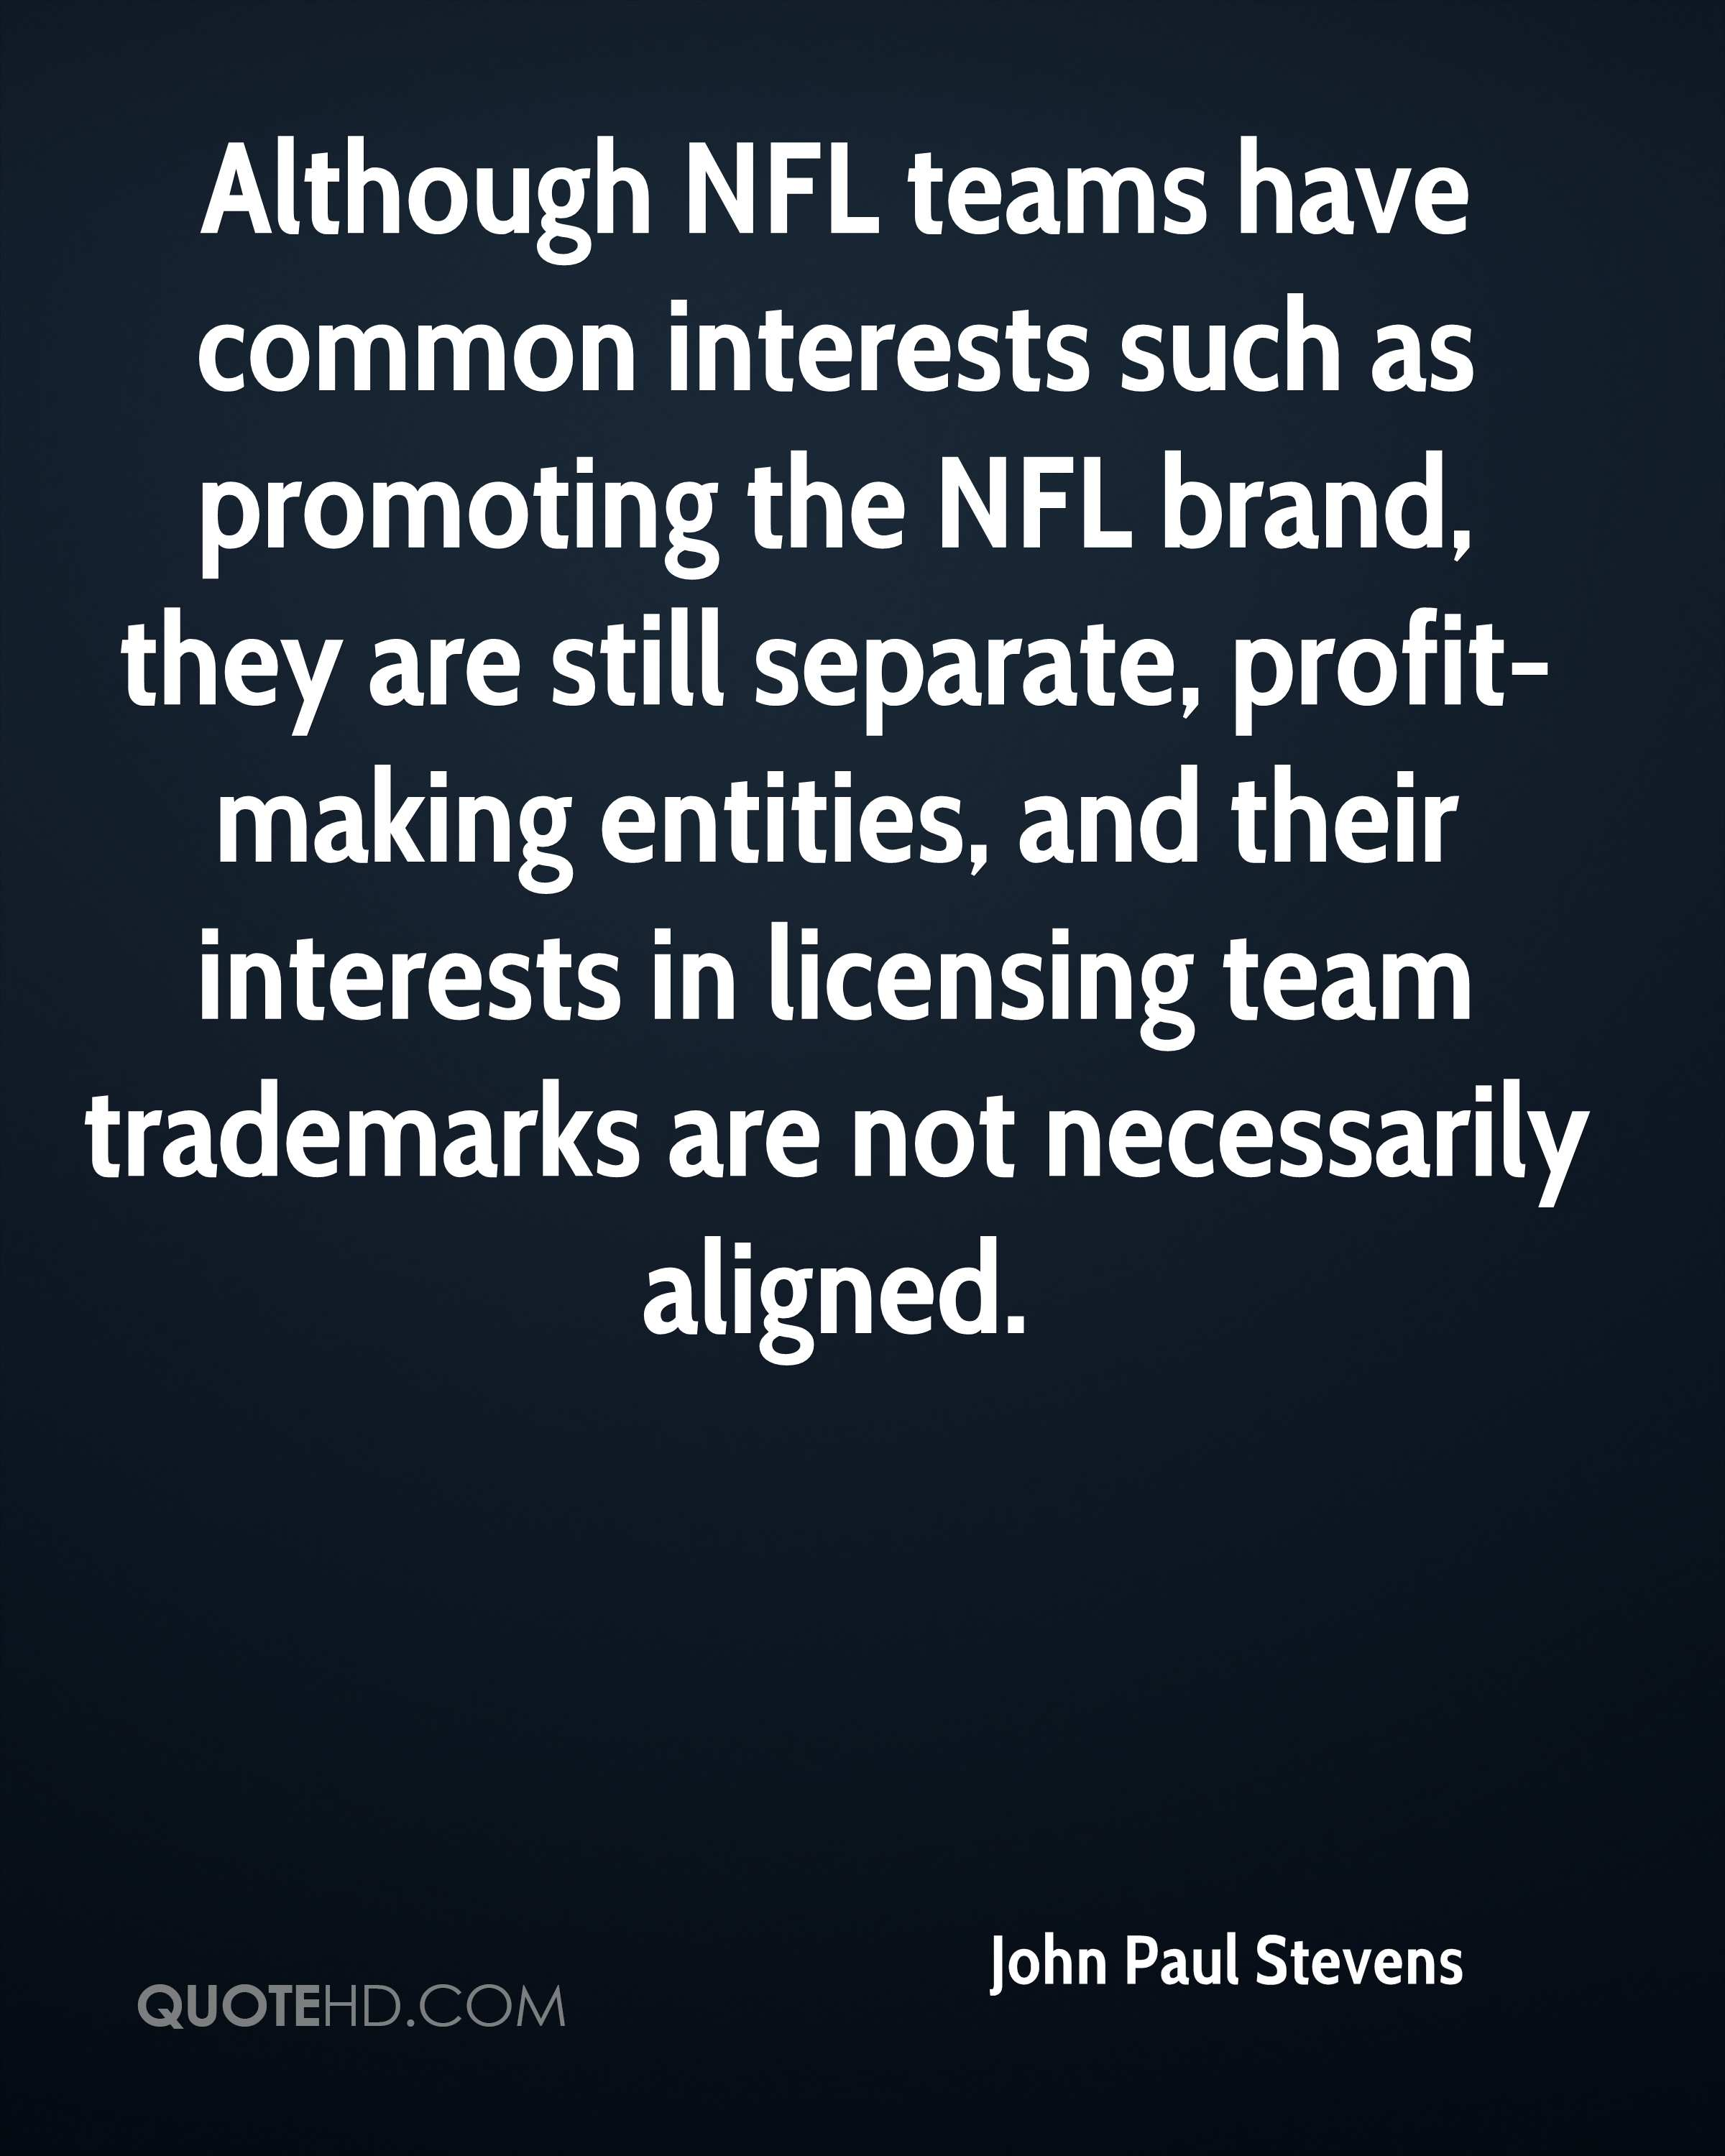 Although NFL teams have common interests such as promoting the NFL brand, they are still separate, profit-making entities, and their interests in licensing team trademarks are not necessarily aligned.